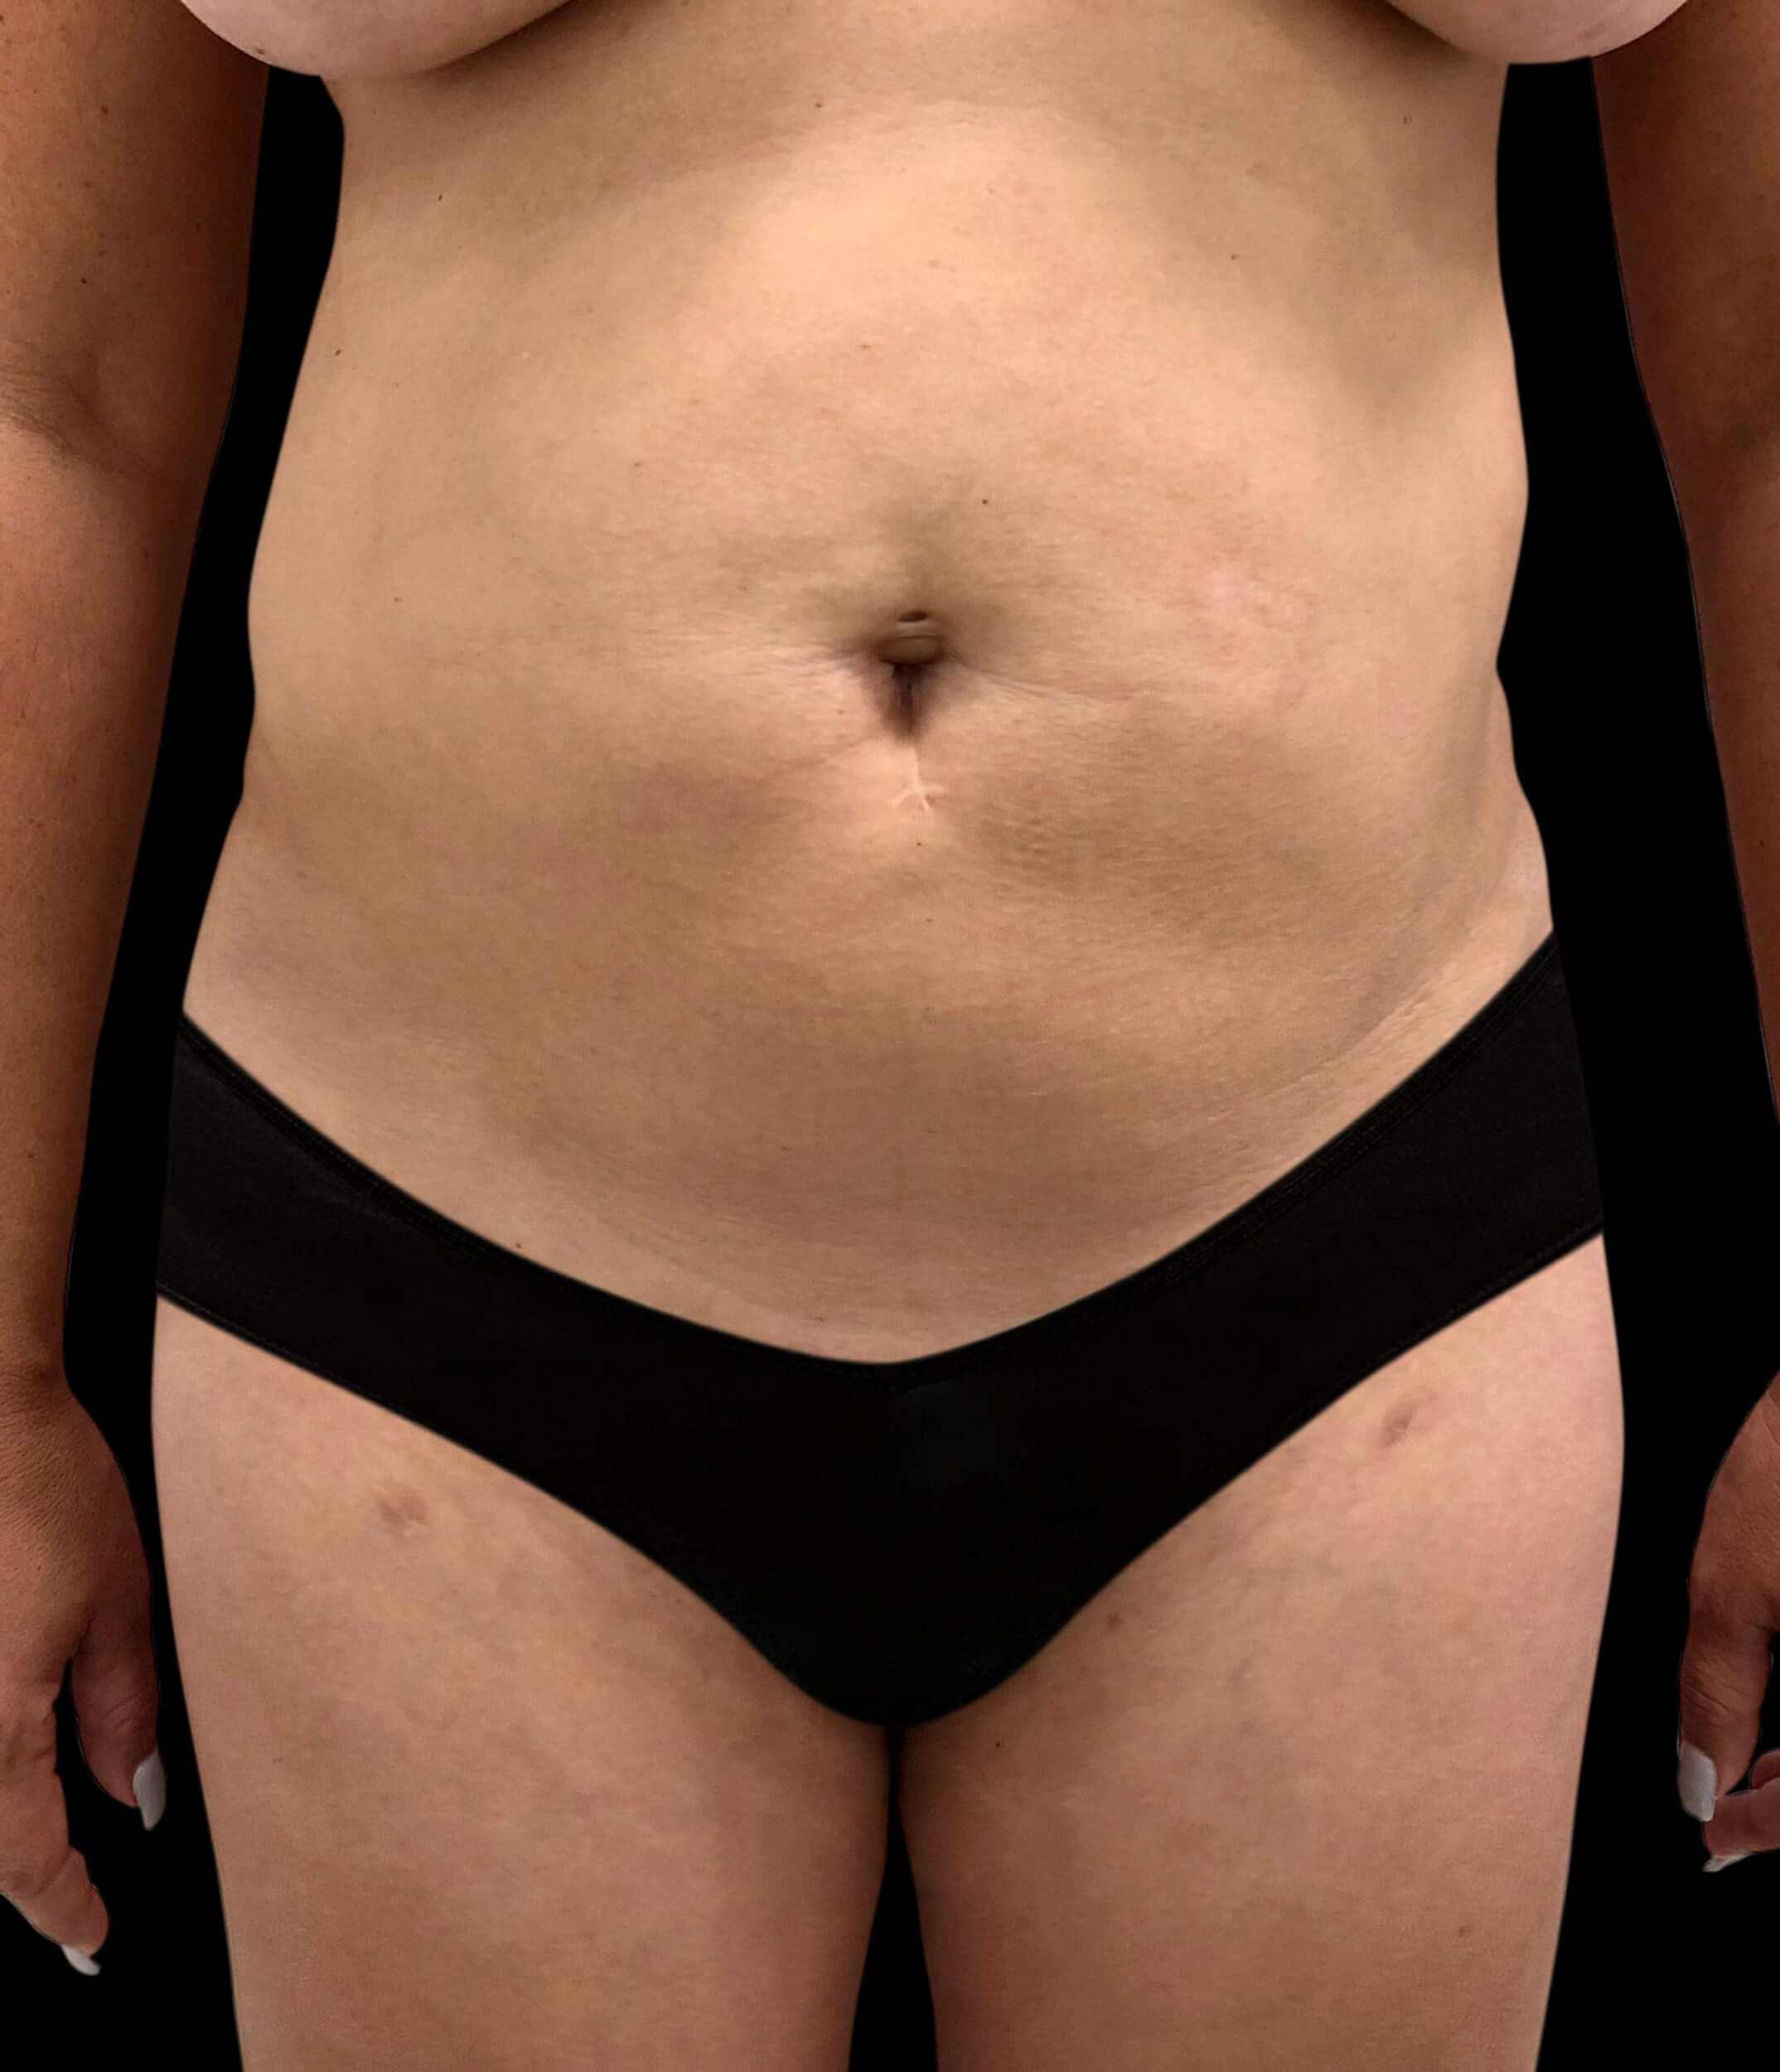 Liposuction & Skin Tightening Before